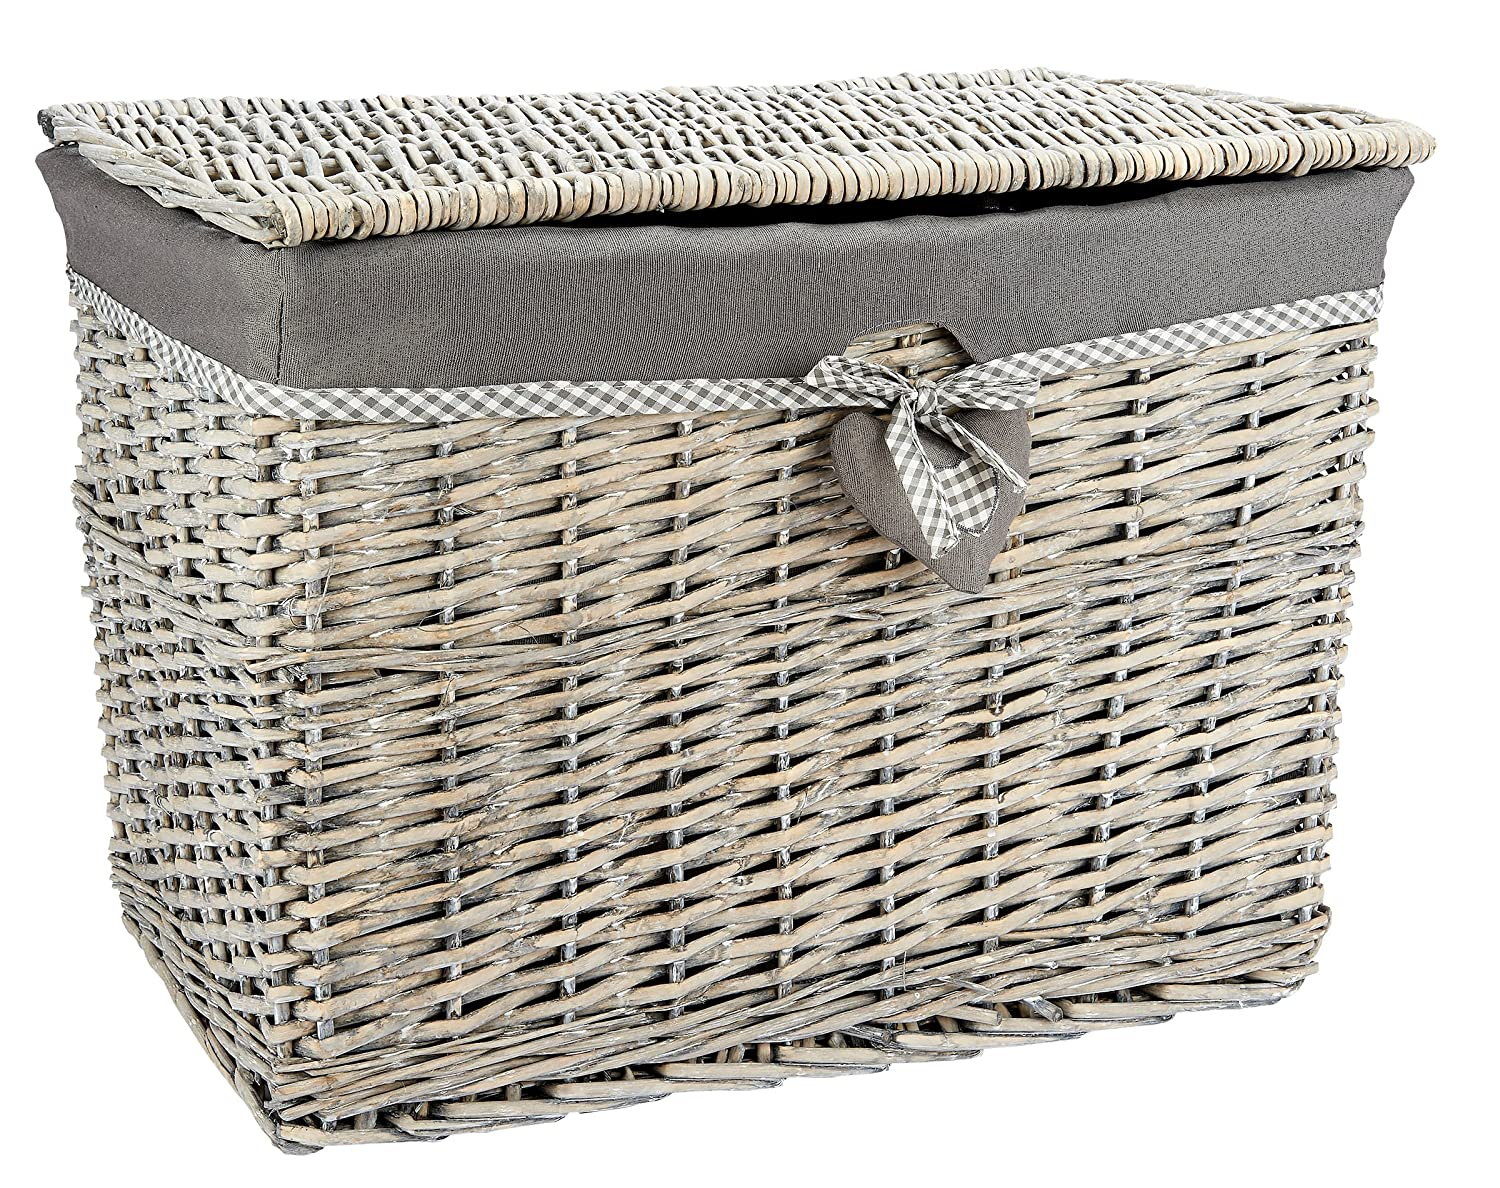 Medium Grey Wicker Storage Basket Trunk Chest Hamper Lidded with Cloth Linning, W51 x D31 x H36cms Woodluv